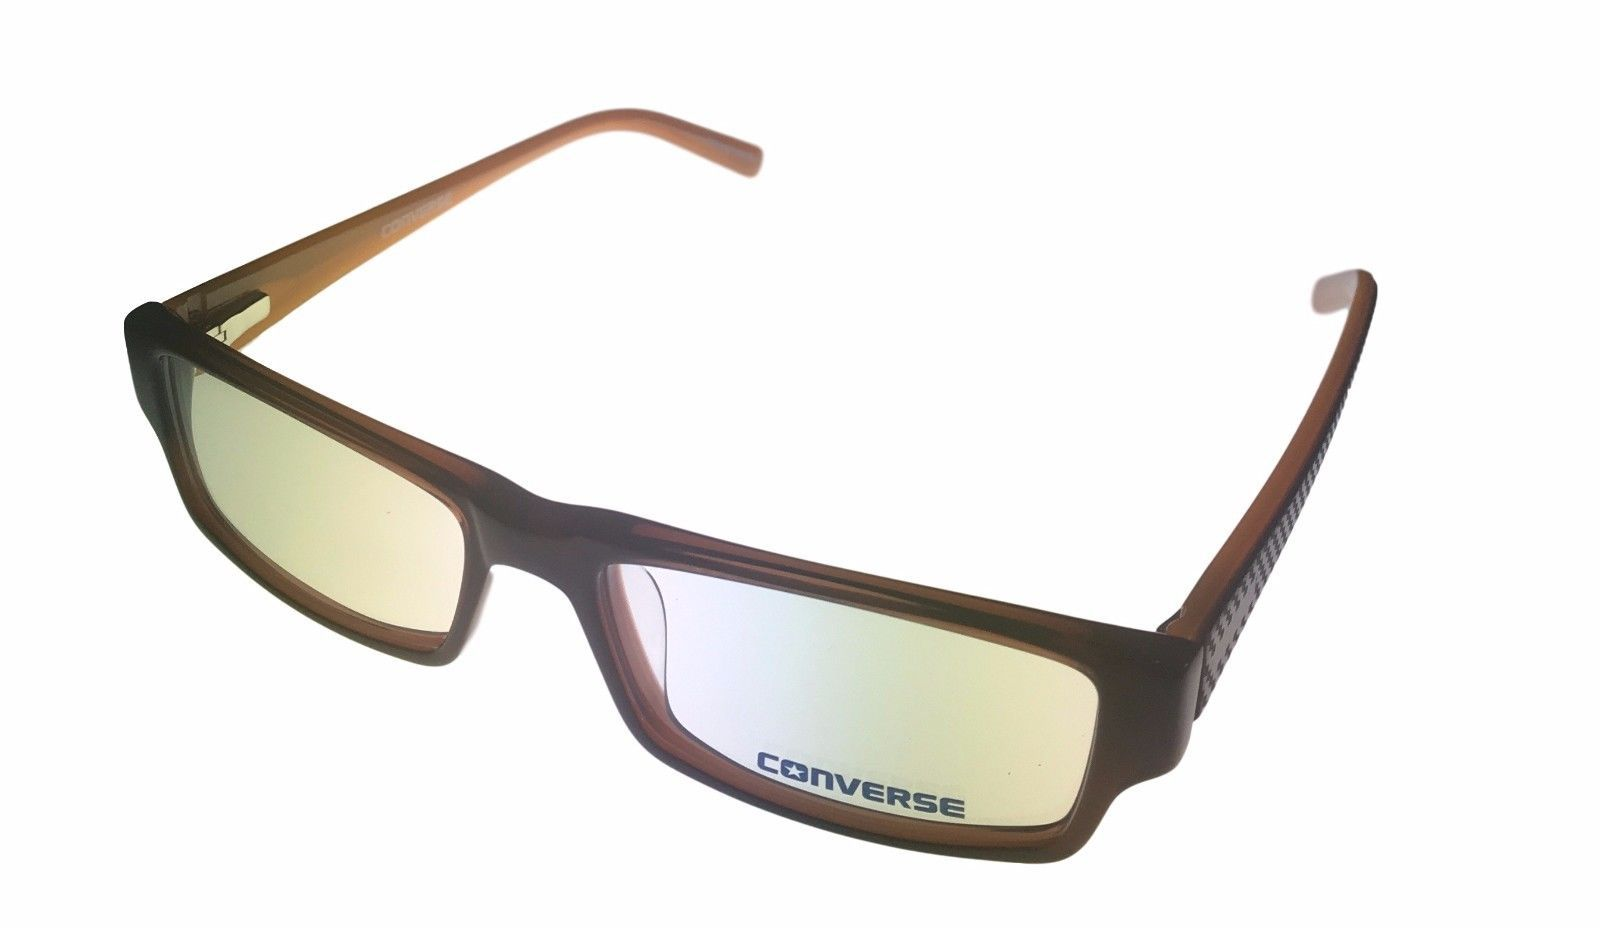 Converse Ophthalmic Mens Rectangle Plastic Eyeglass Frame Brown Q004